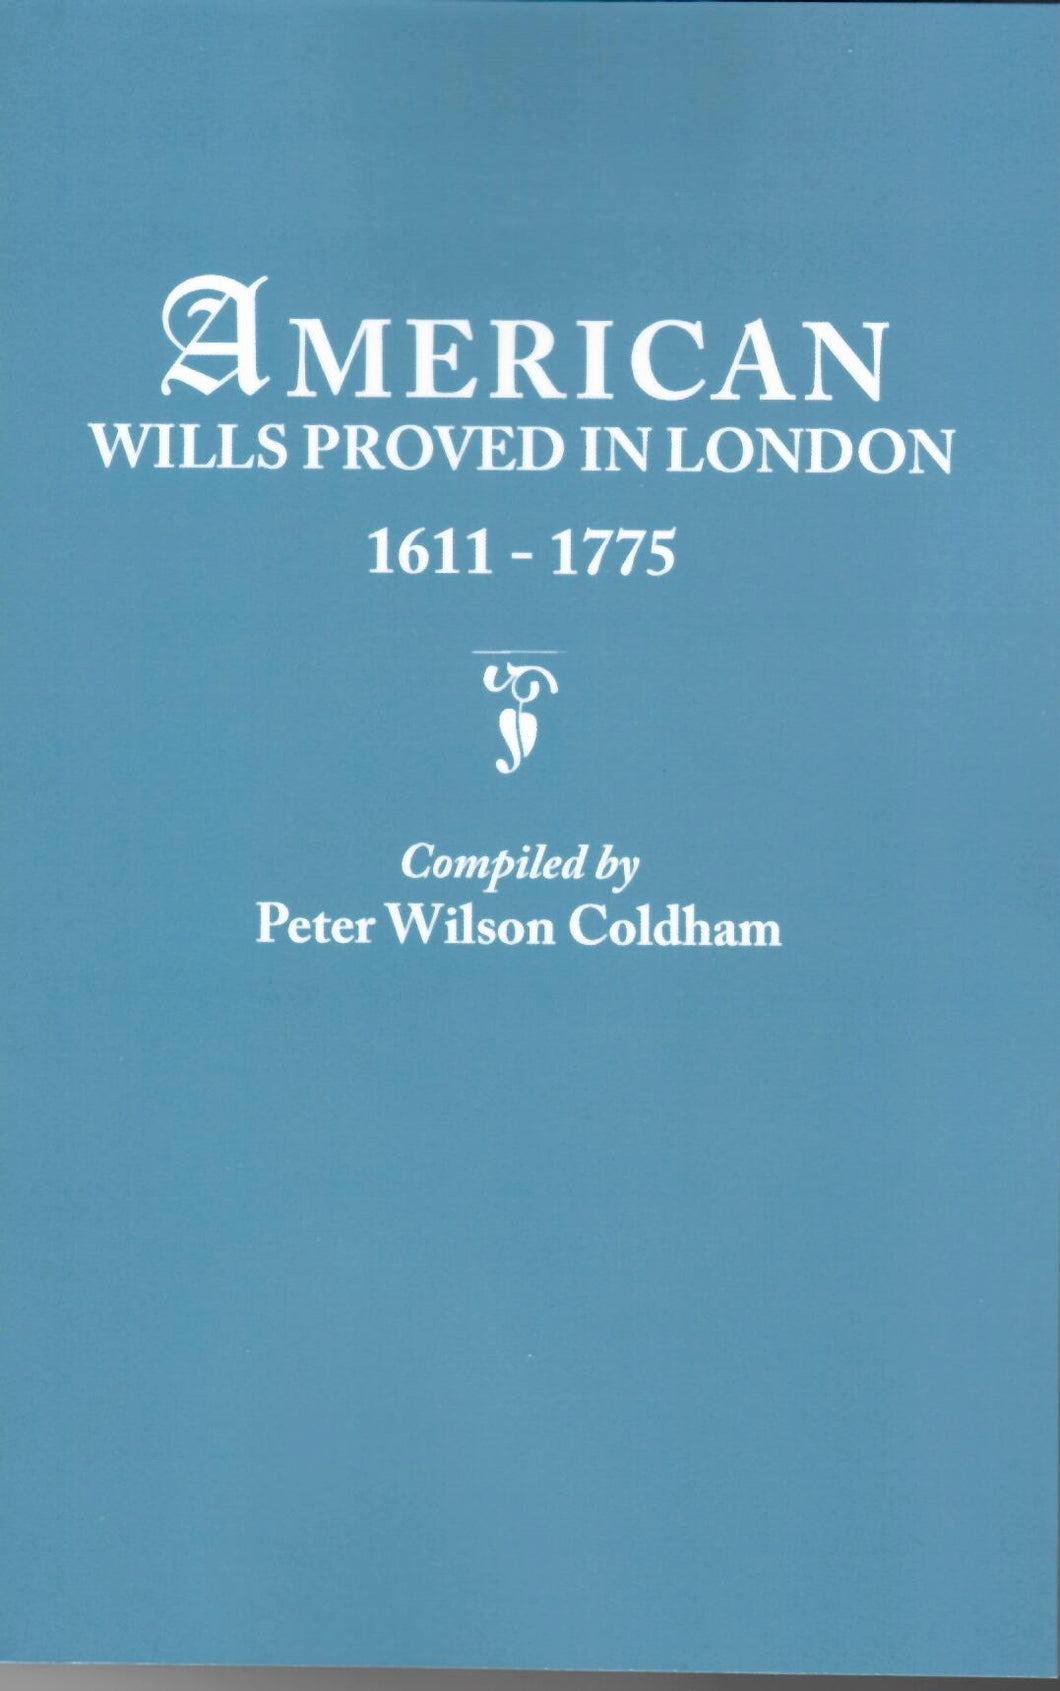 American Wills Proved in London, 1611-1775